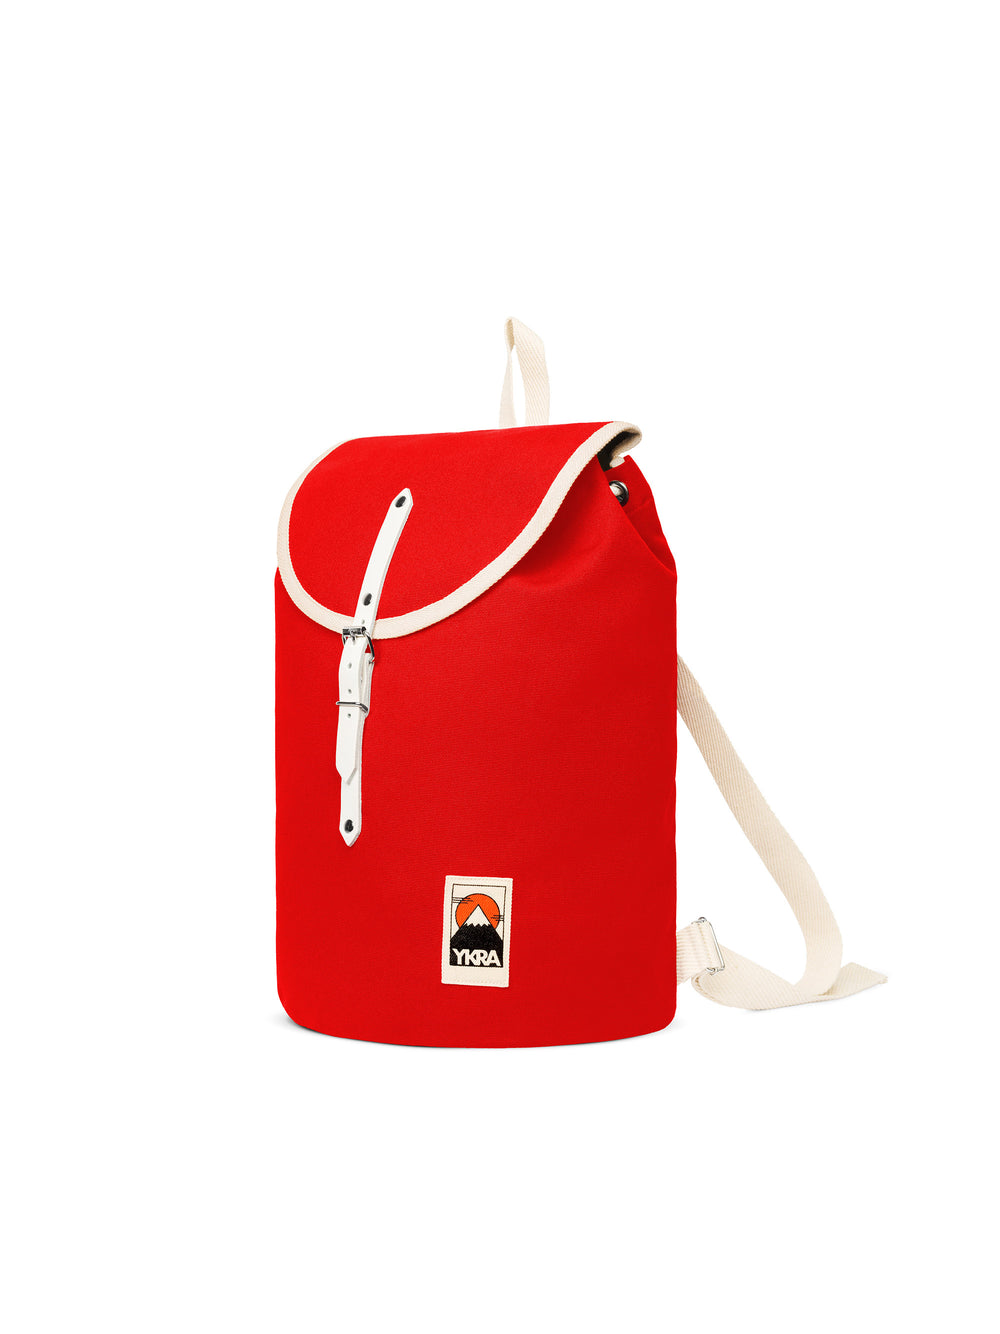 Sailorpack Cotton Strap Red